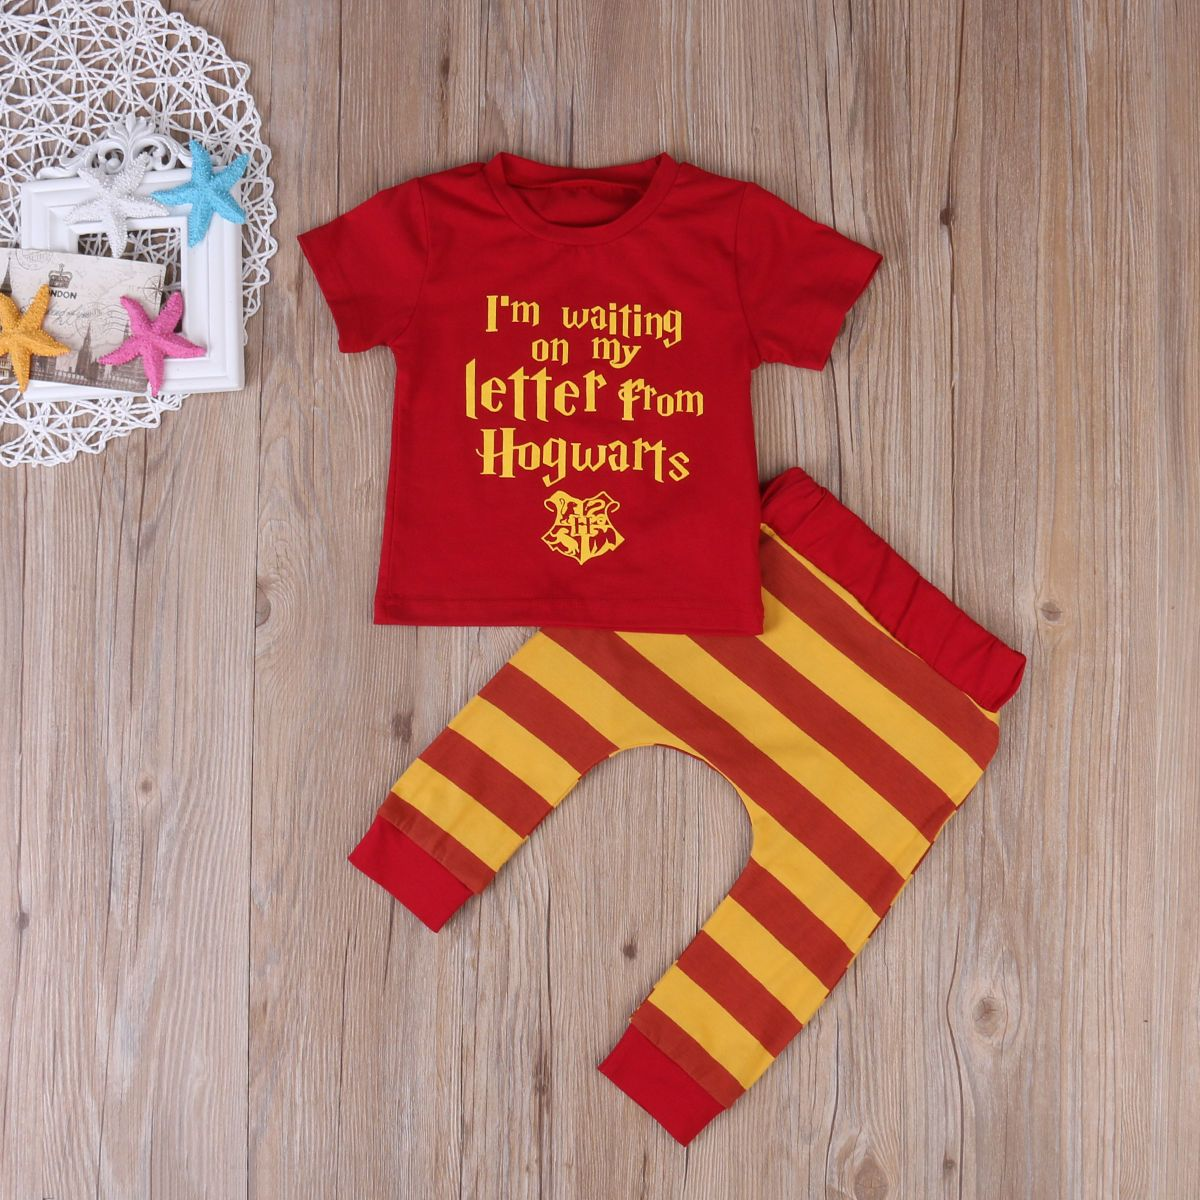 cool US STOCK 2pcs Toddler Infant Baby Boy Girl Clothes T-shirt Tops+Pant Outfits Set   Check more at http://harmonisproduction.com/us-stock-2pcs-toddler-infant-baby-boy-girl-clothes-t-shirt-topspant-outfits-set/